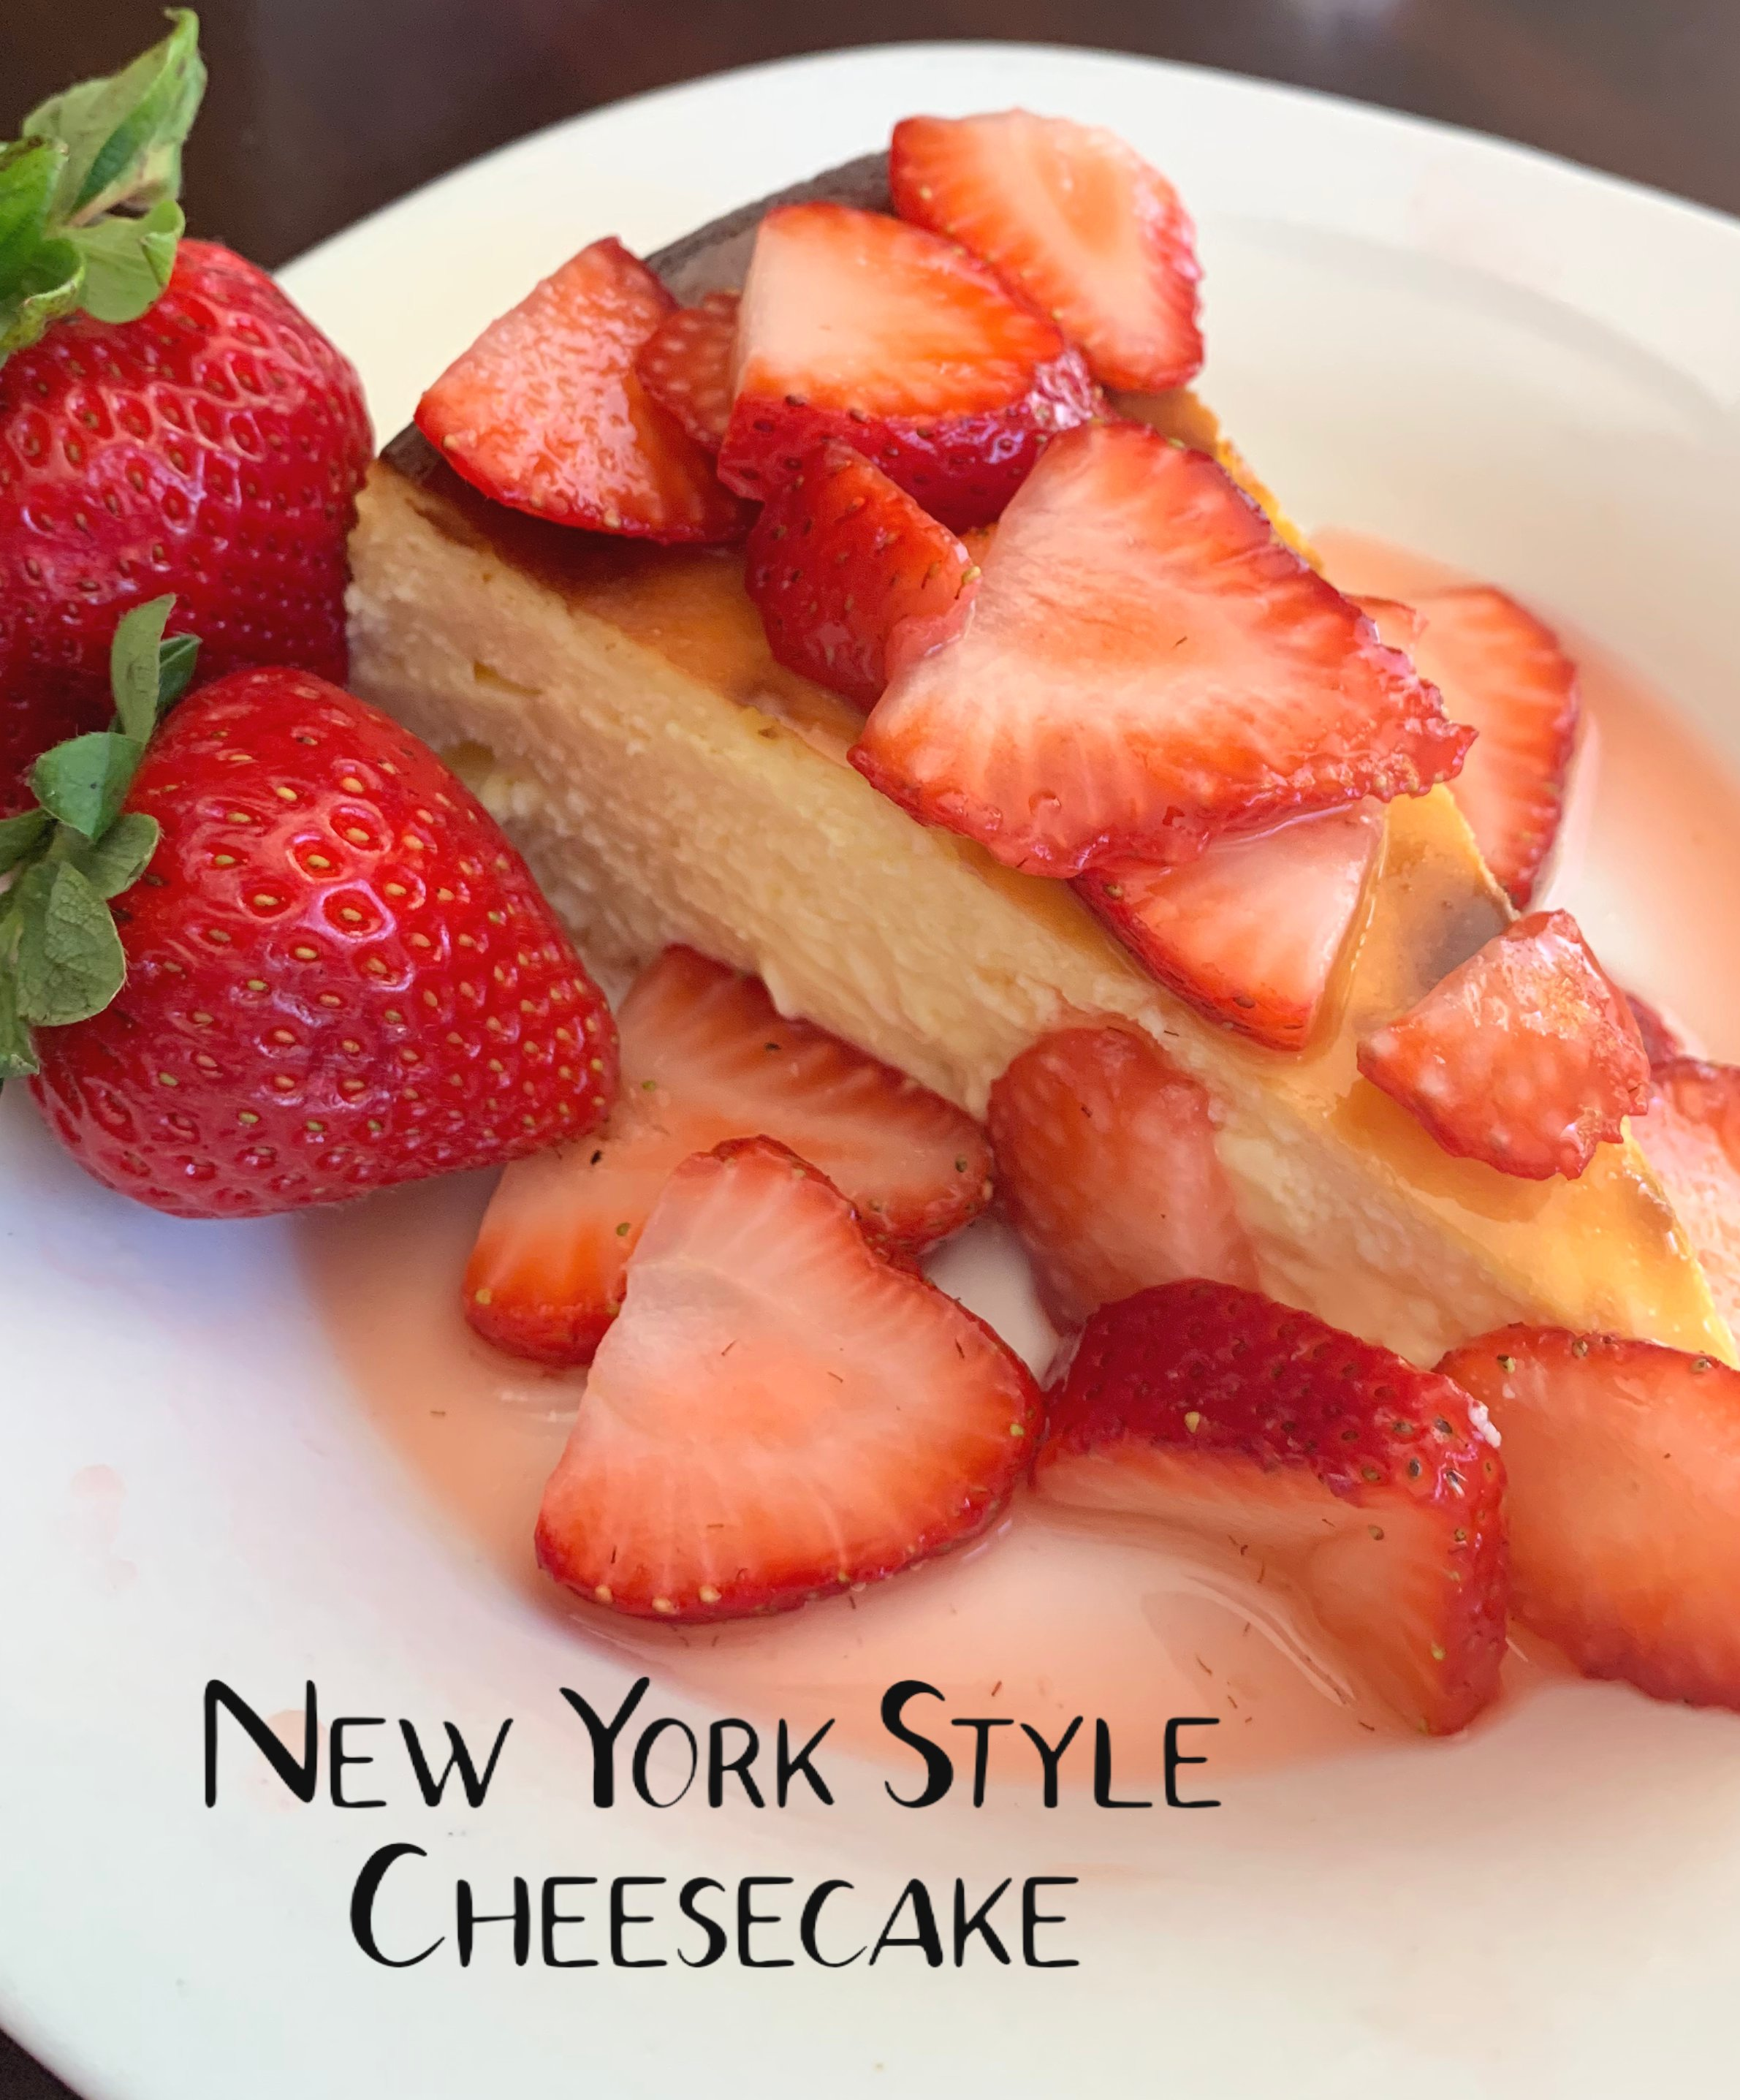 New York Style Cheesecake with strawberries with strawberries recipe